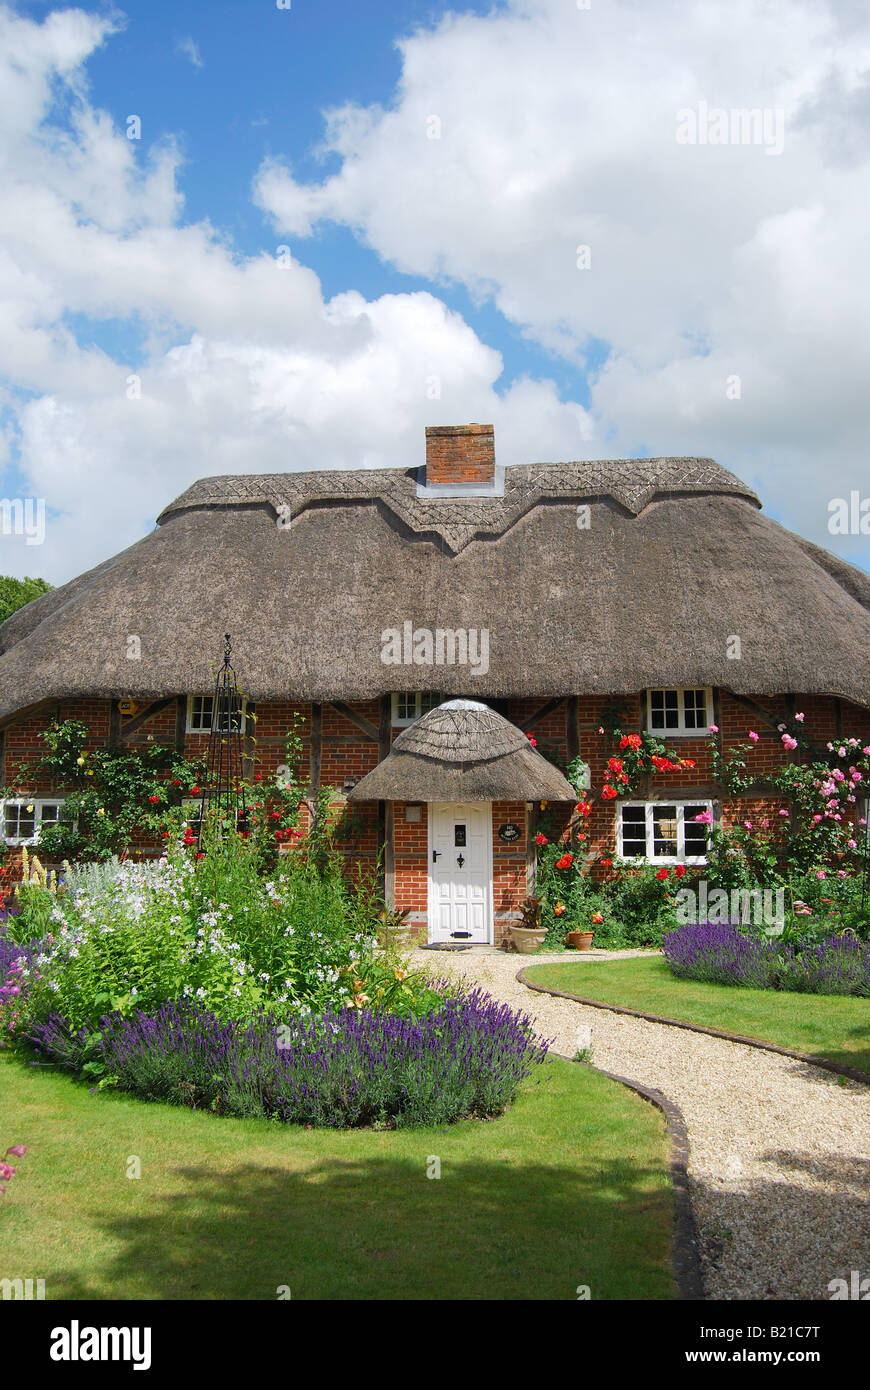 Pretty, thatched, country cottage and garden, Itchen Stoke, Hampshire, England, United Kingdom - Stock Image